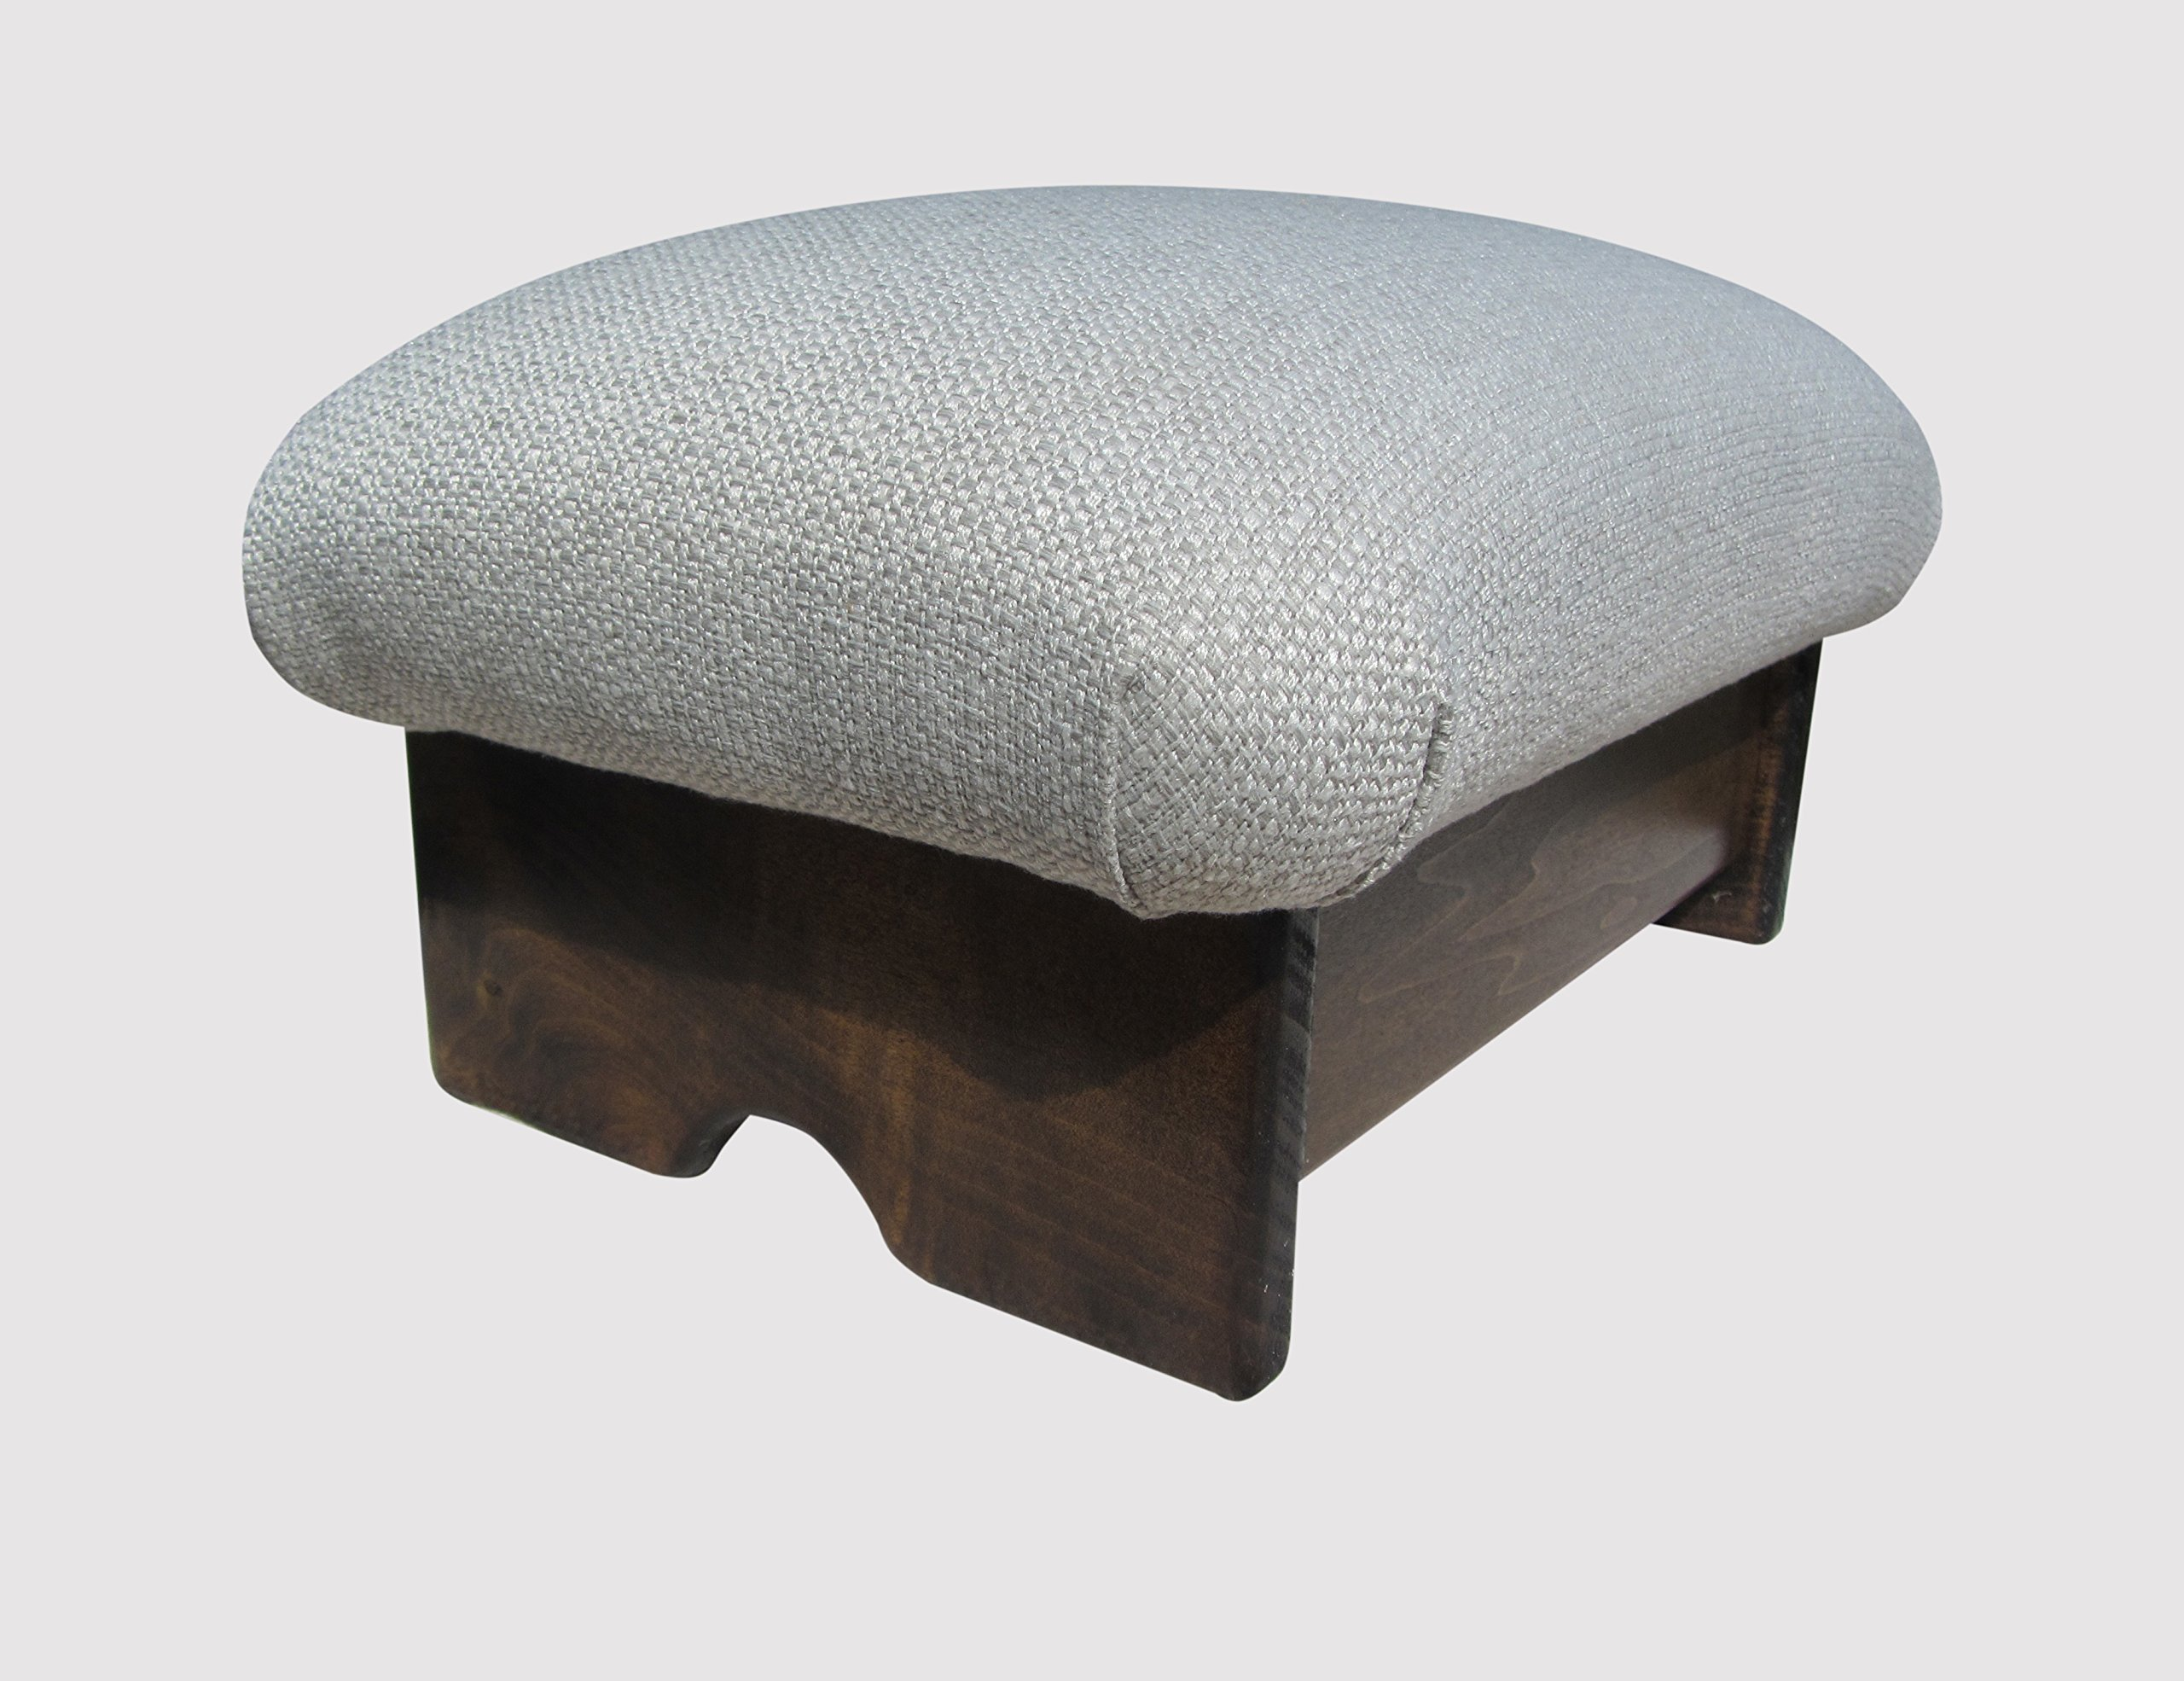 Padded Foot Stool Solid Fabric 7'' Tall Maple Stain (Made in the USA) (Malibu Sea Salt - Maple)